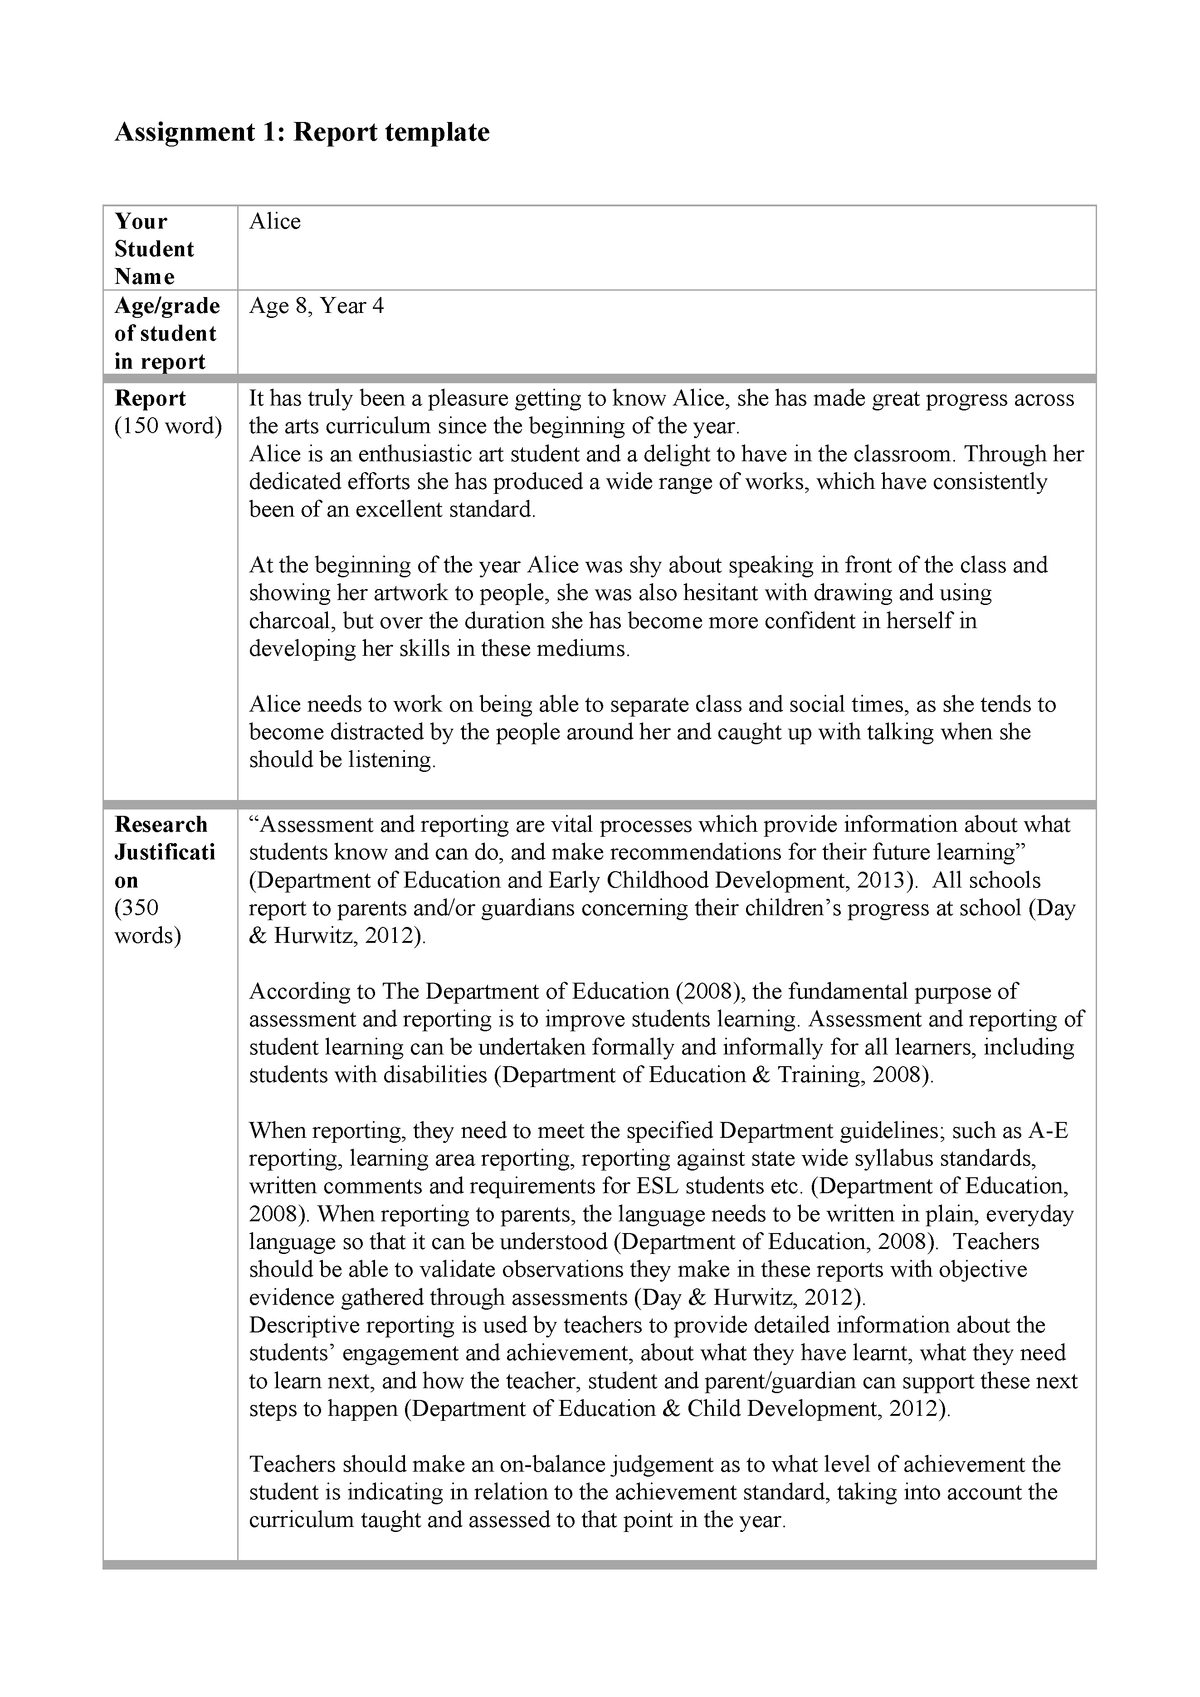 Report Template – Assignment – 6890 Arts Education 2 – Uc Throughout Assignment Report Template